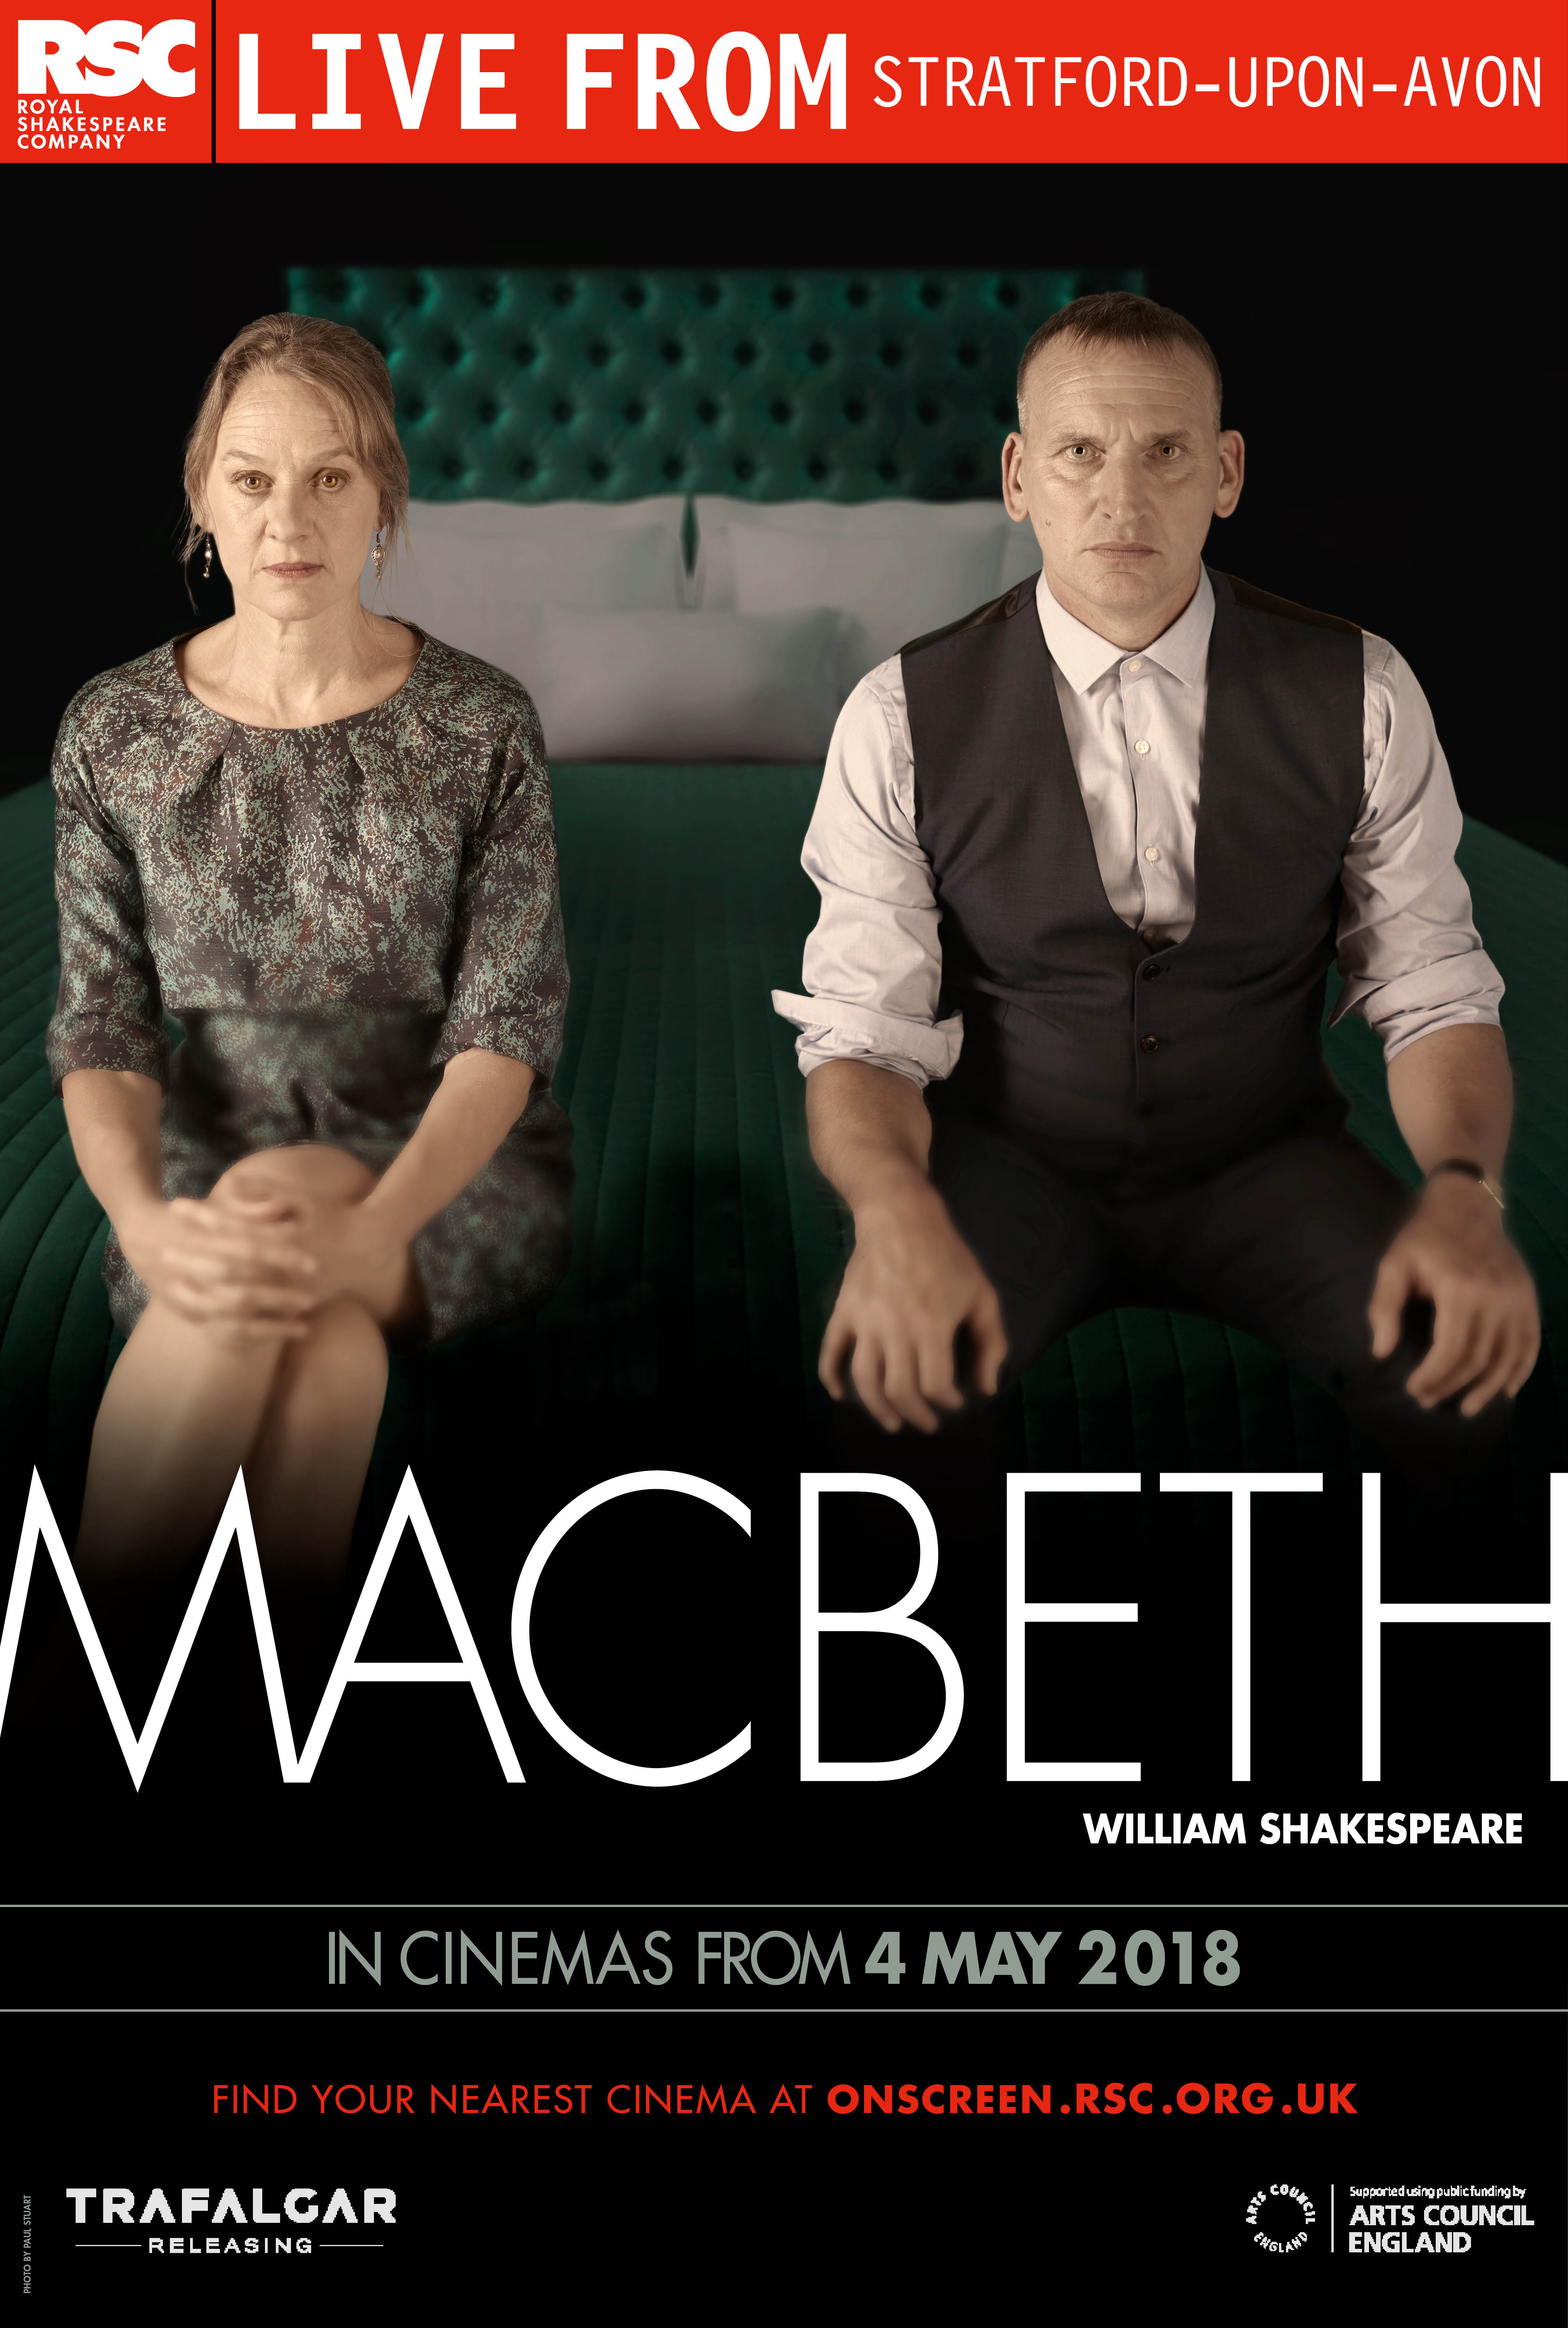 Royal Shakespeare Company: Macbeth Poster